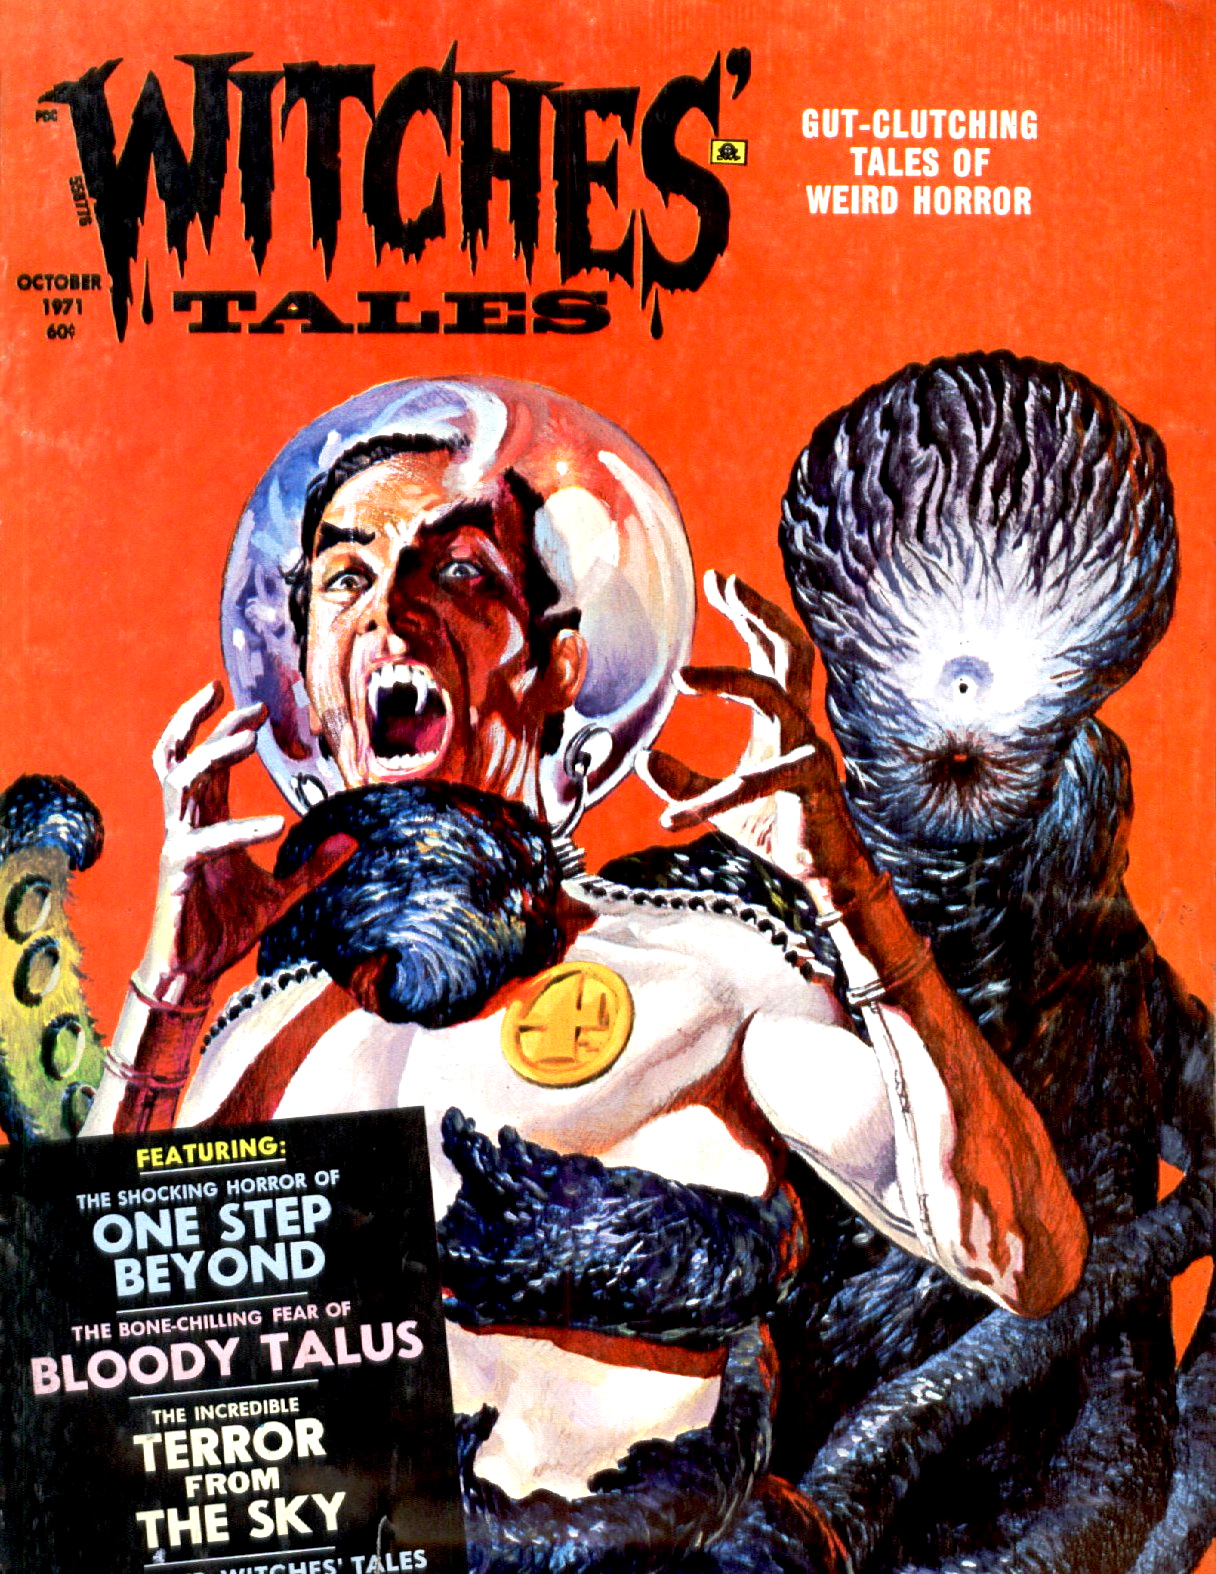 Witches' Tales Vol. 3 #5  (Eerie Publications 1971)